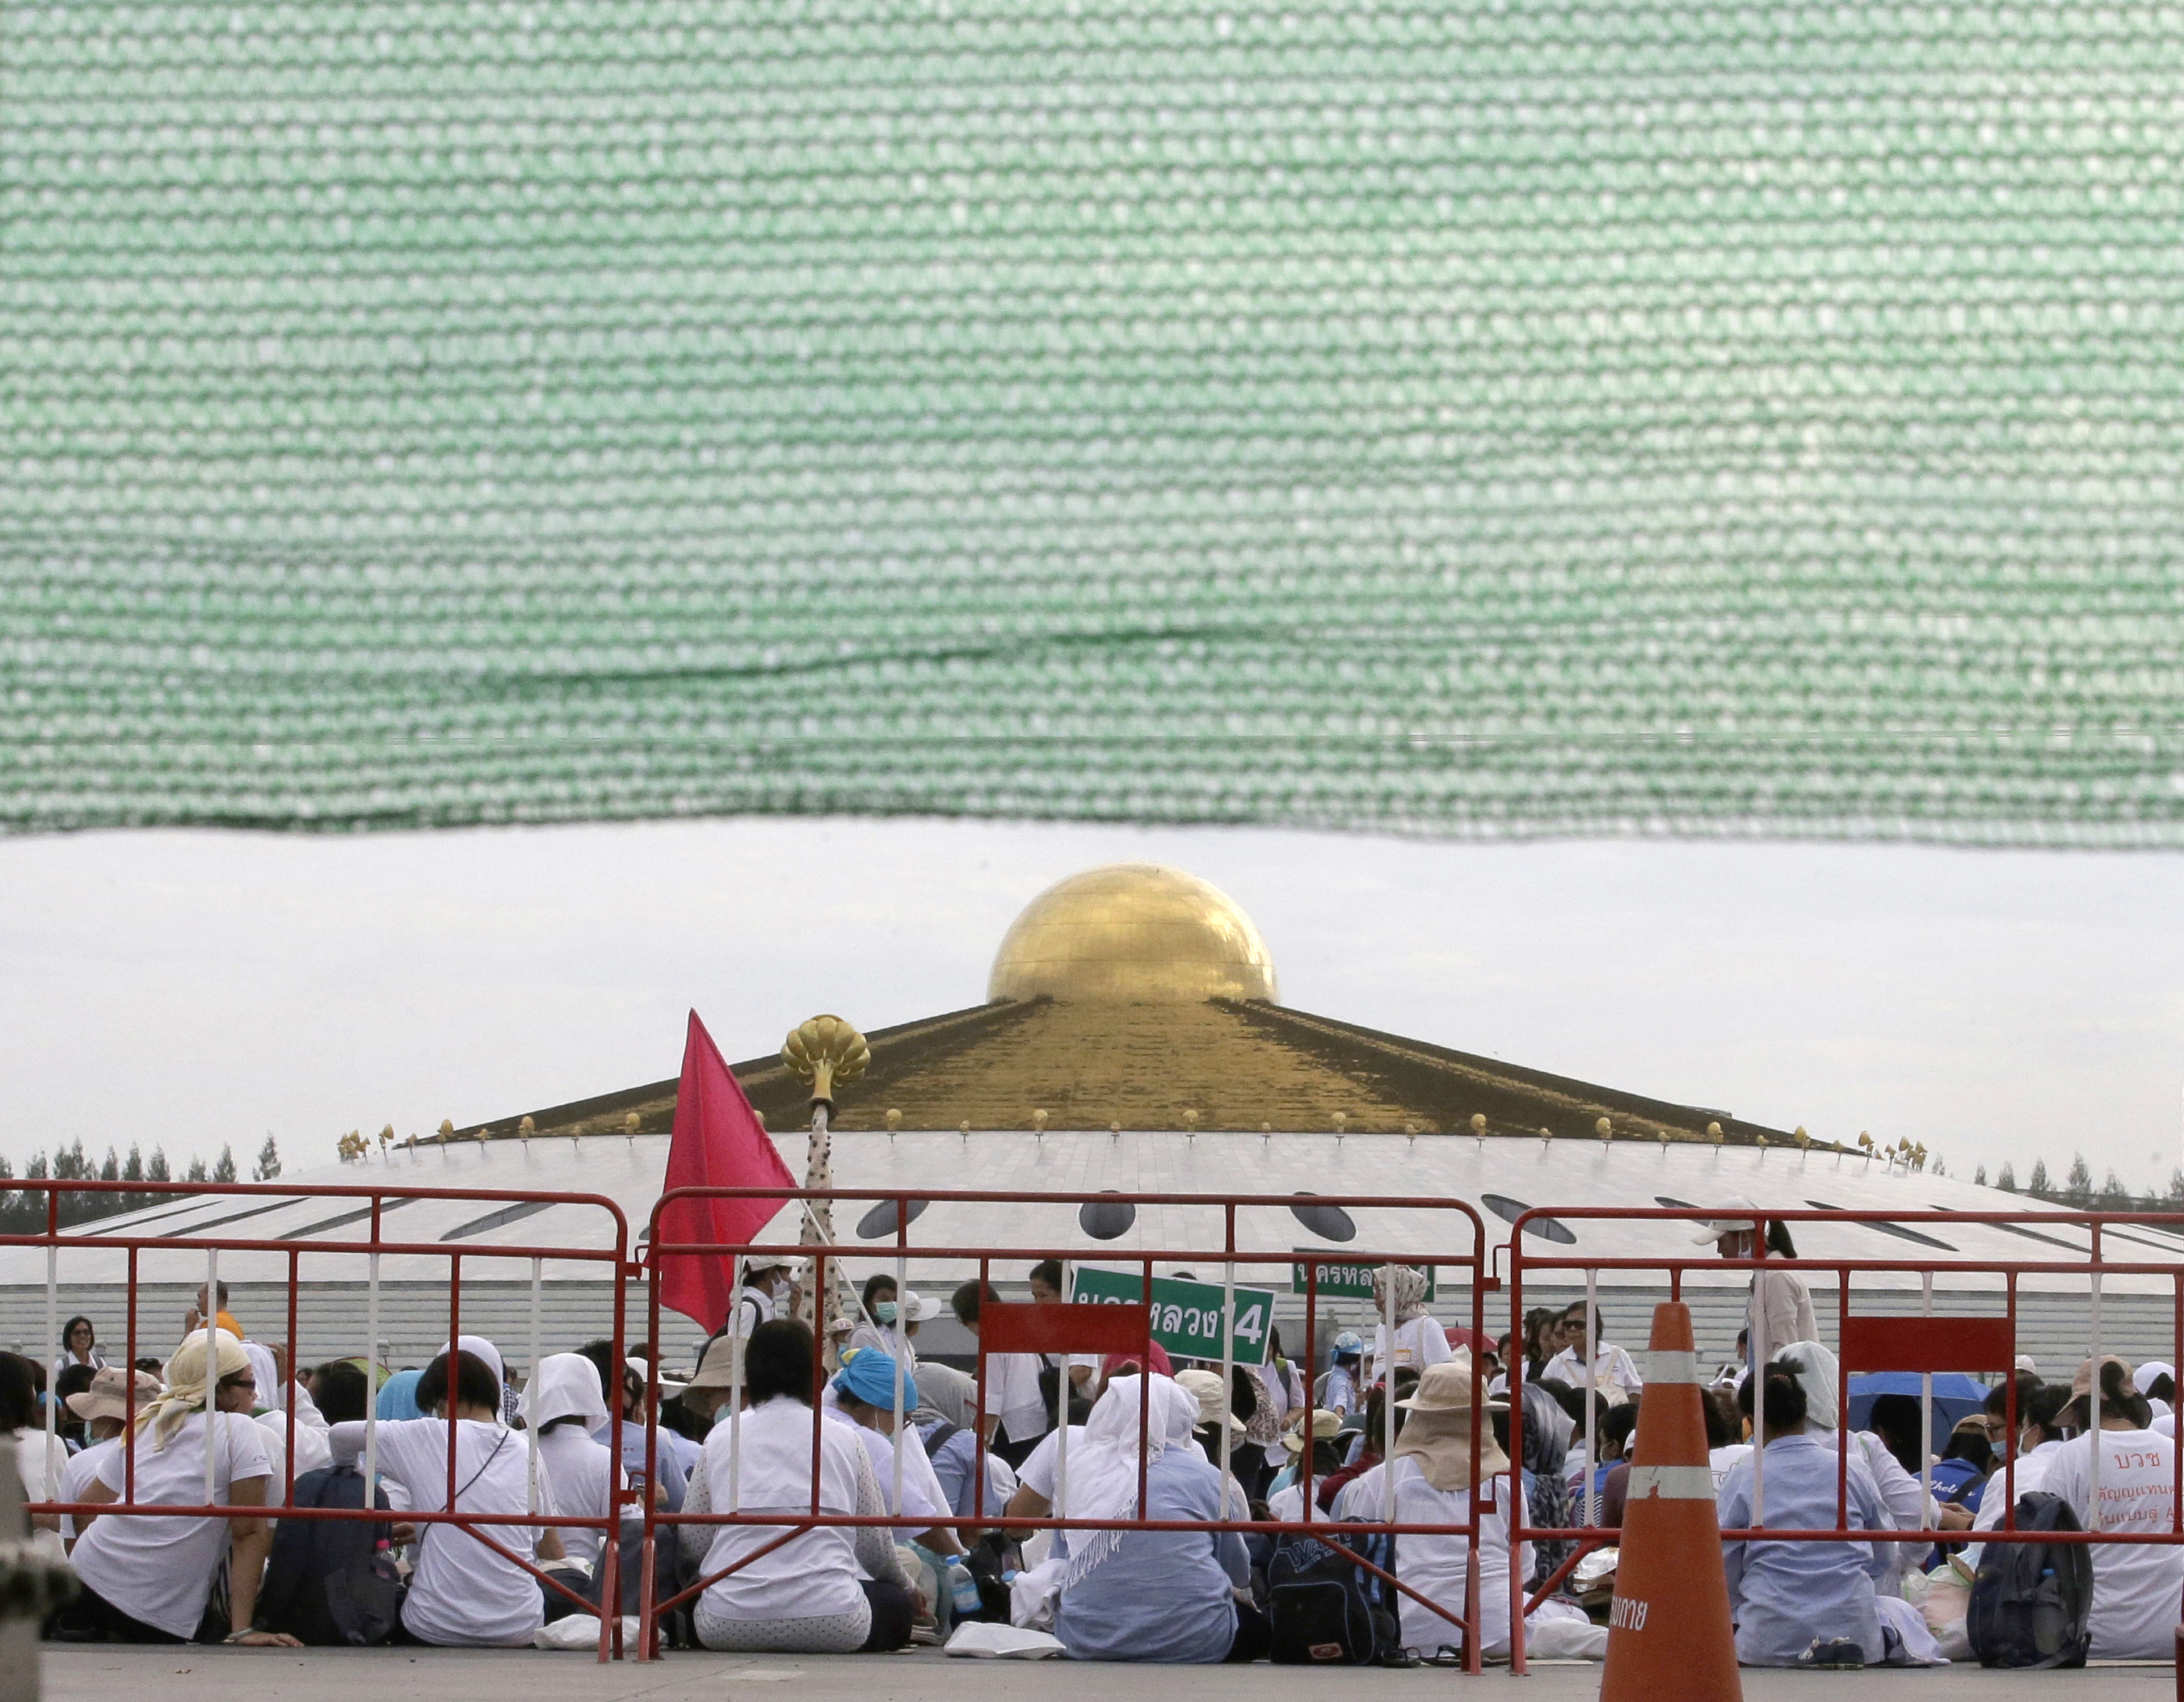 Buddhist monks and devotees sit outside the Wat Phra Dhammakaya temple in Pathum Thani province, north of Bangkok, Thailand, Thursday, June 16, 2016.